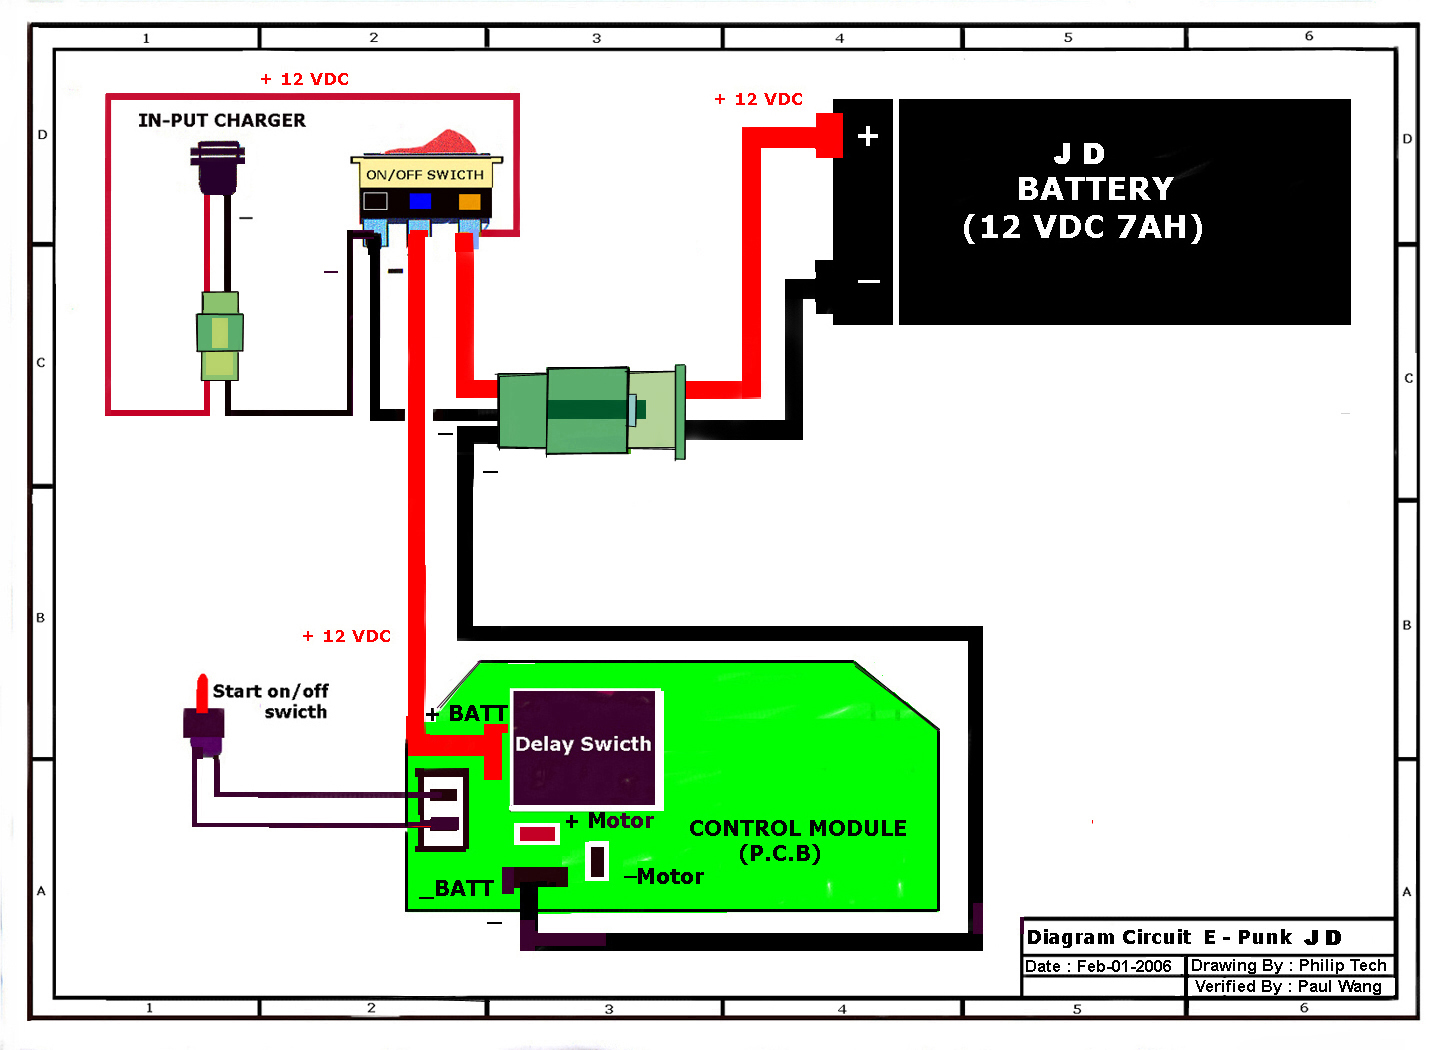 razor epunk wiring diagram jd razor go kart wiring diagram razor go kart parts \u2022 free wiring  at mifinder.co